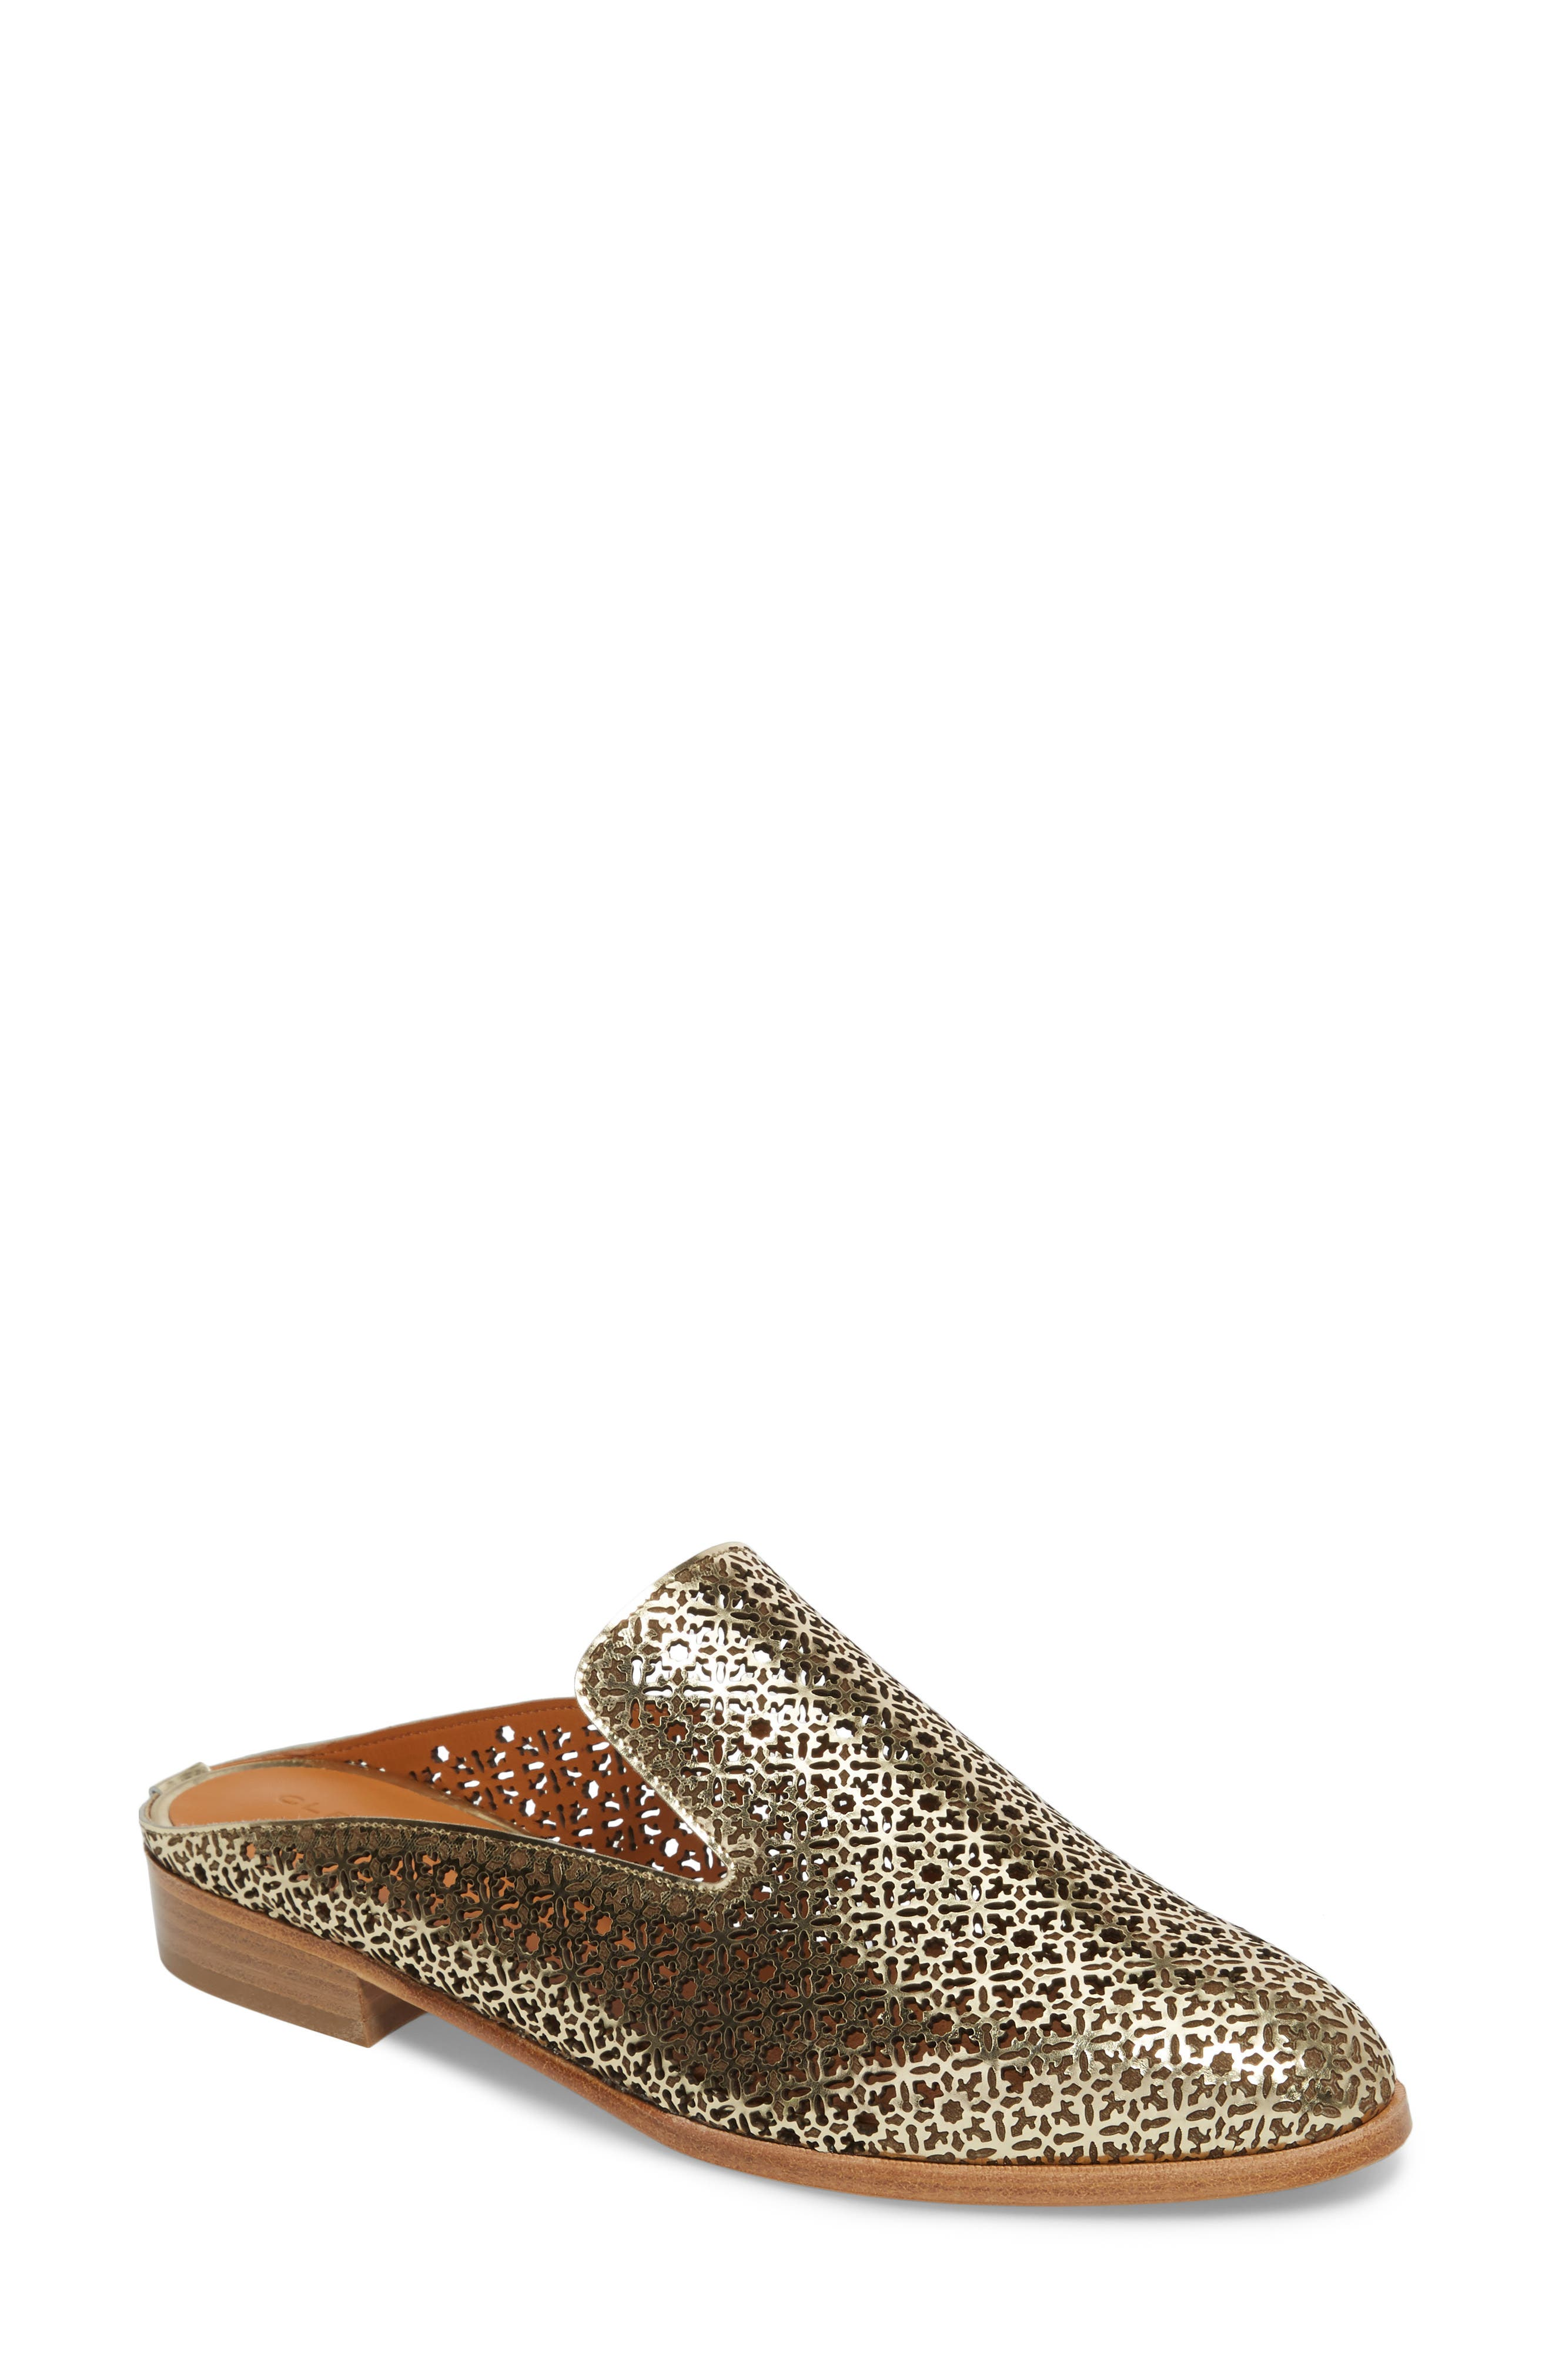 Asier Perforated Loafer Mule,                             Main thumbnail 1, color,                             Platino